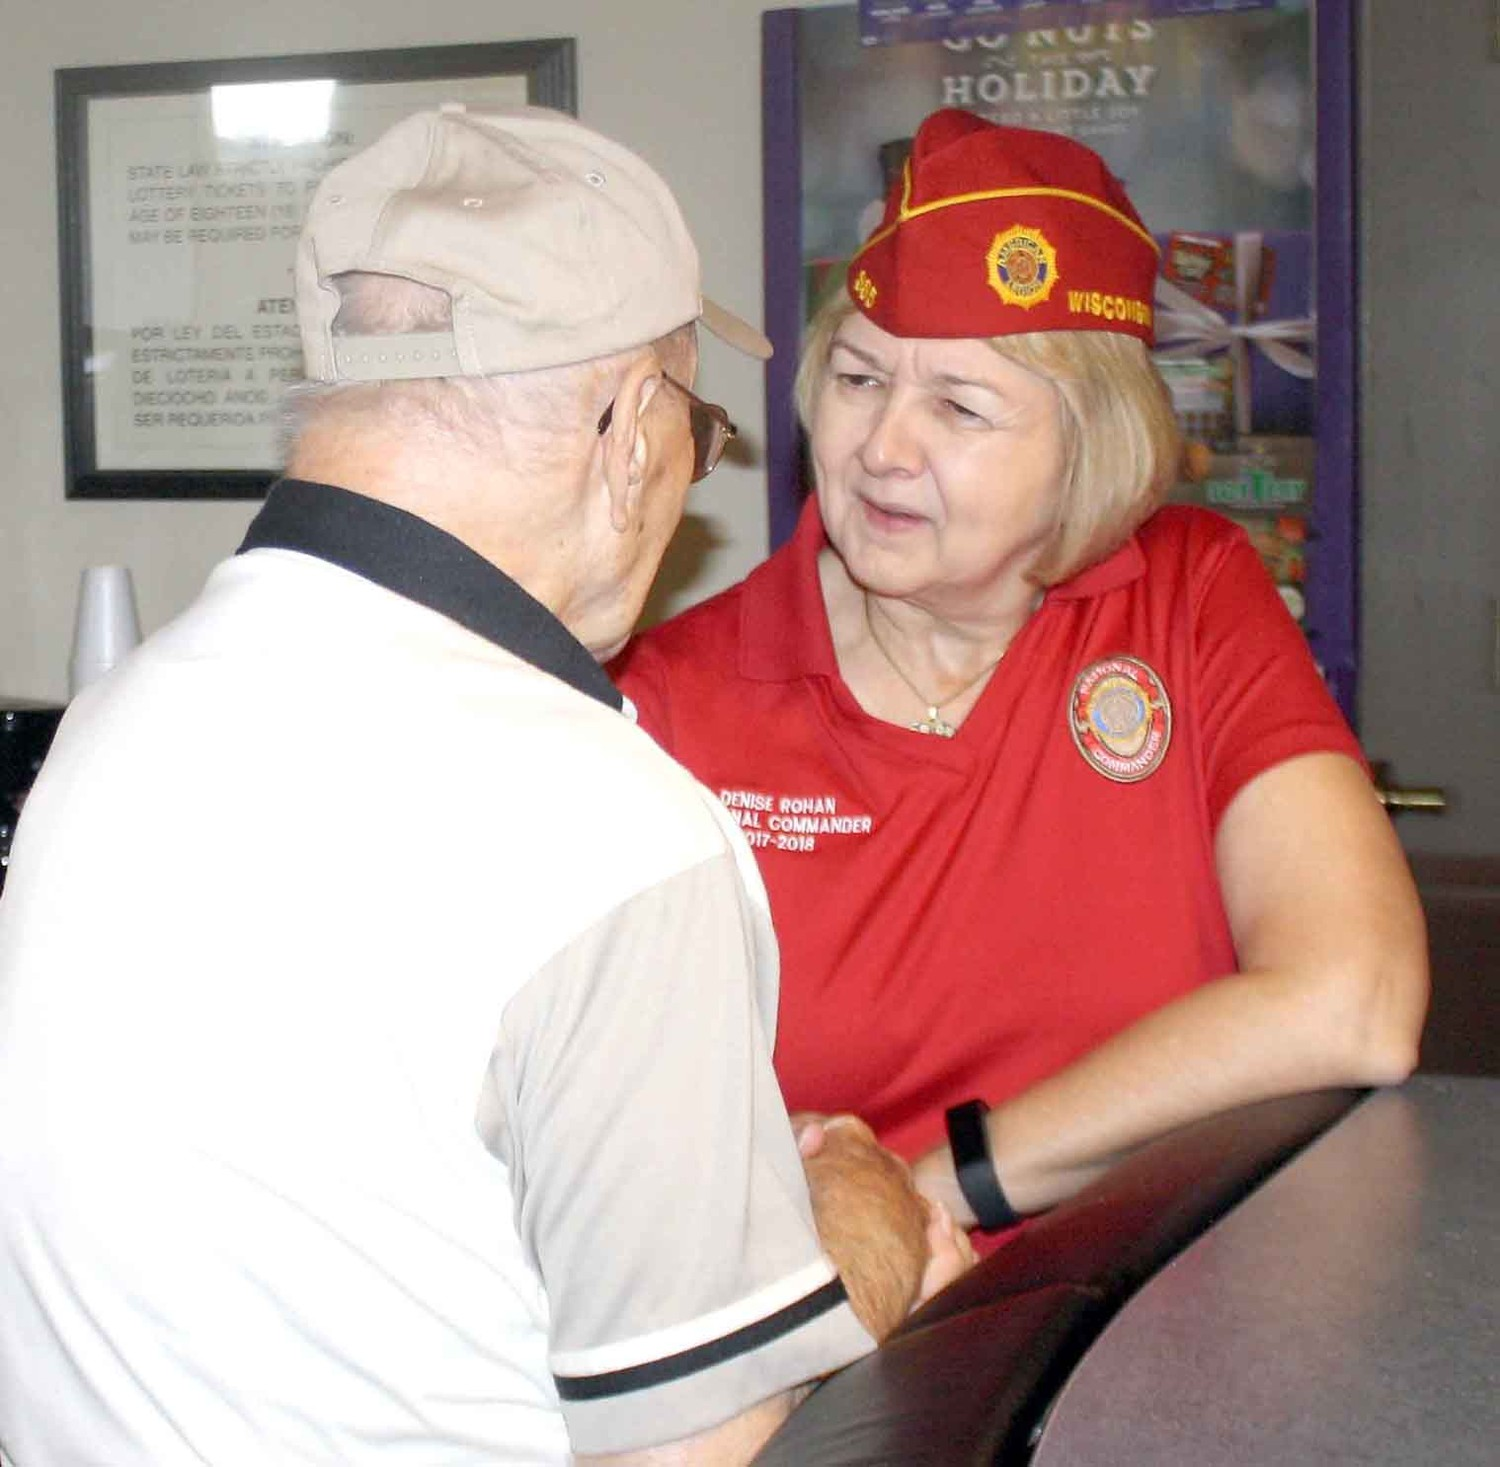 AMERICAN LEGION National Commander Denis Rohan, right, said she enjoyed talking with Bradley County's lone living Pearl Harbor survivor, George Allen, during her visit to Cleveland's Post 81 Tuesday.